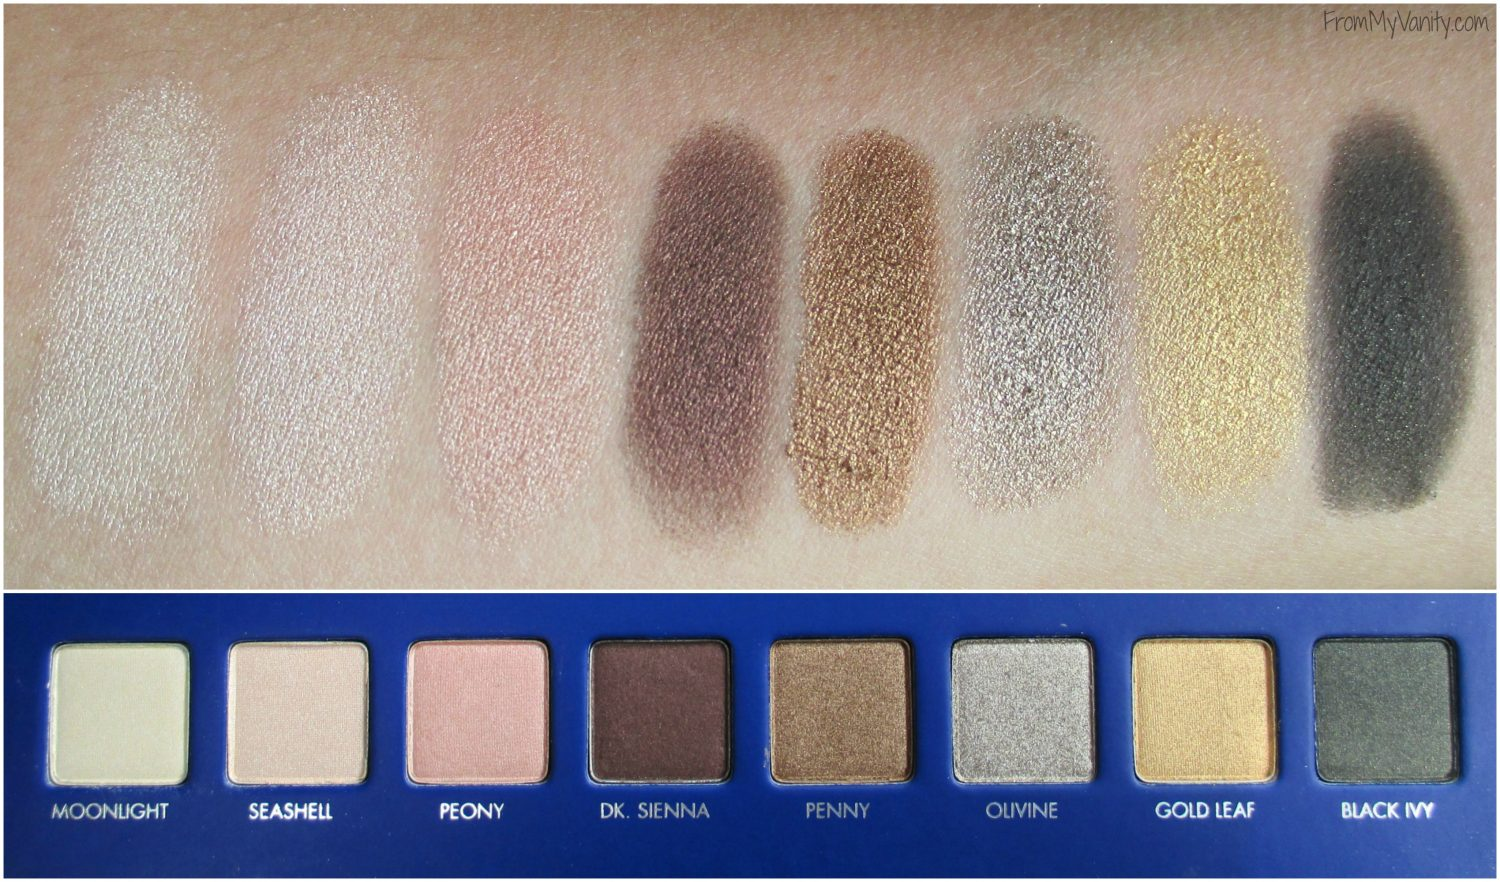 LORAC Mega Pro 2 Eyeshadow Palette // Review, Swatches, & Eye Looks // Swatches of Fourth Row // #LORACCosmetics #MegaPro2 FromMyVanity.com